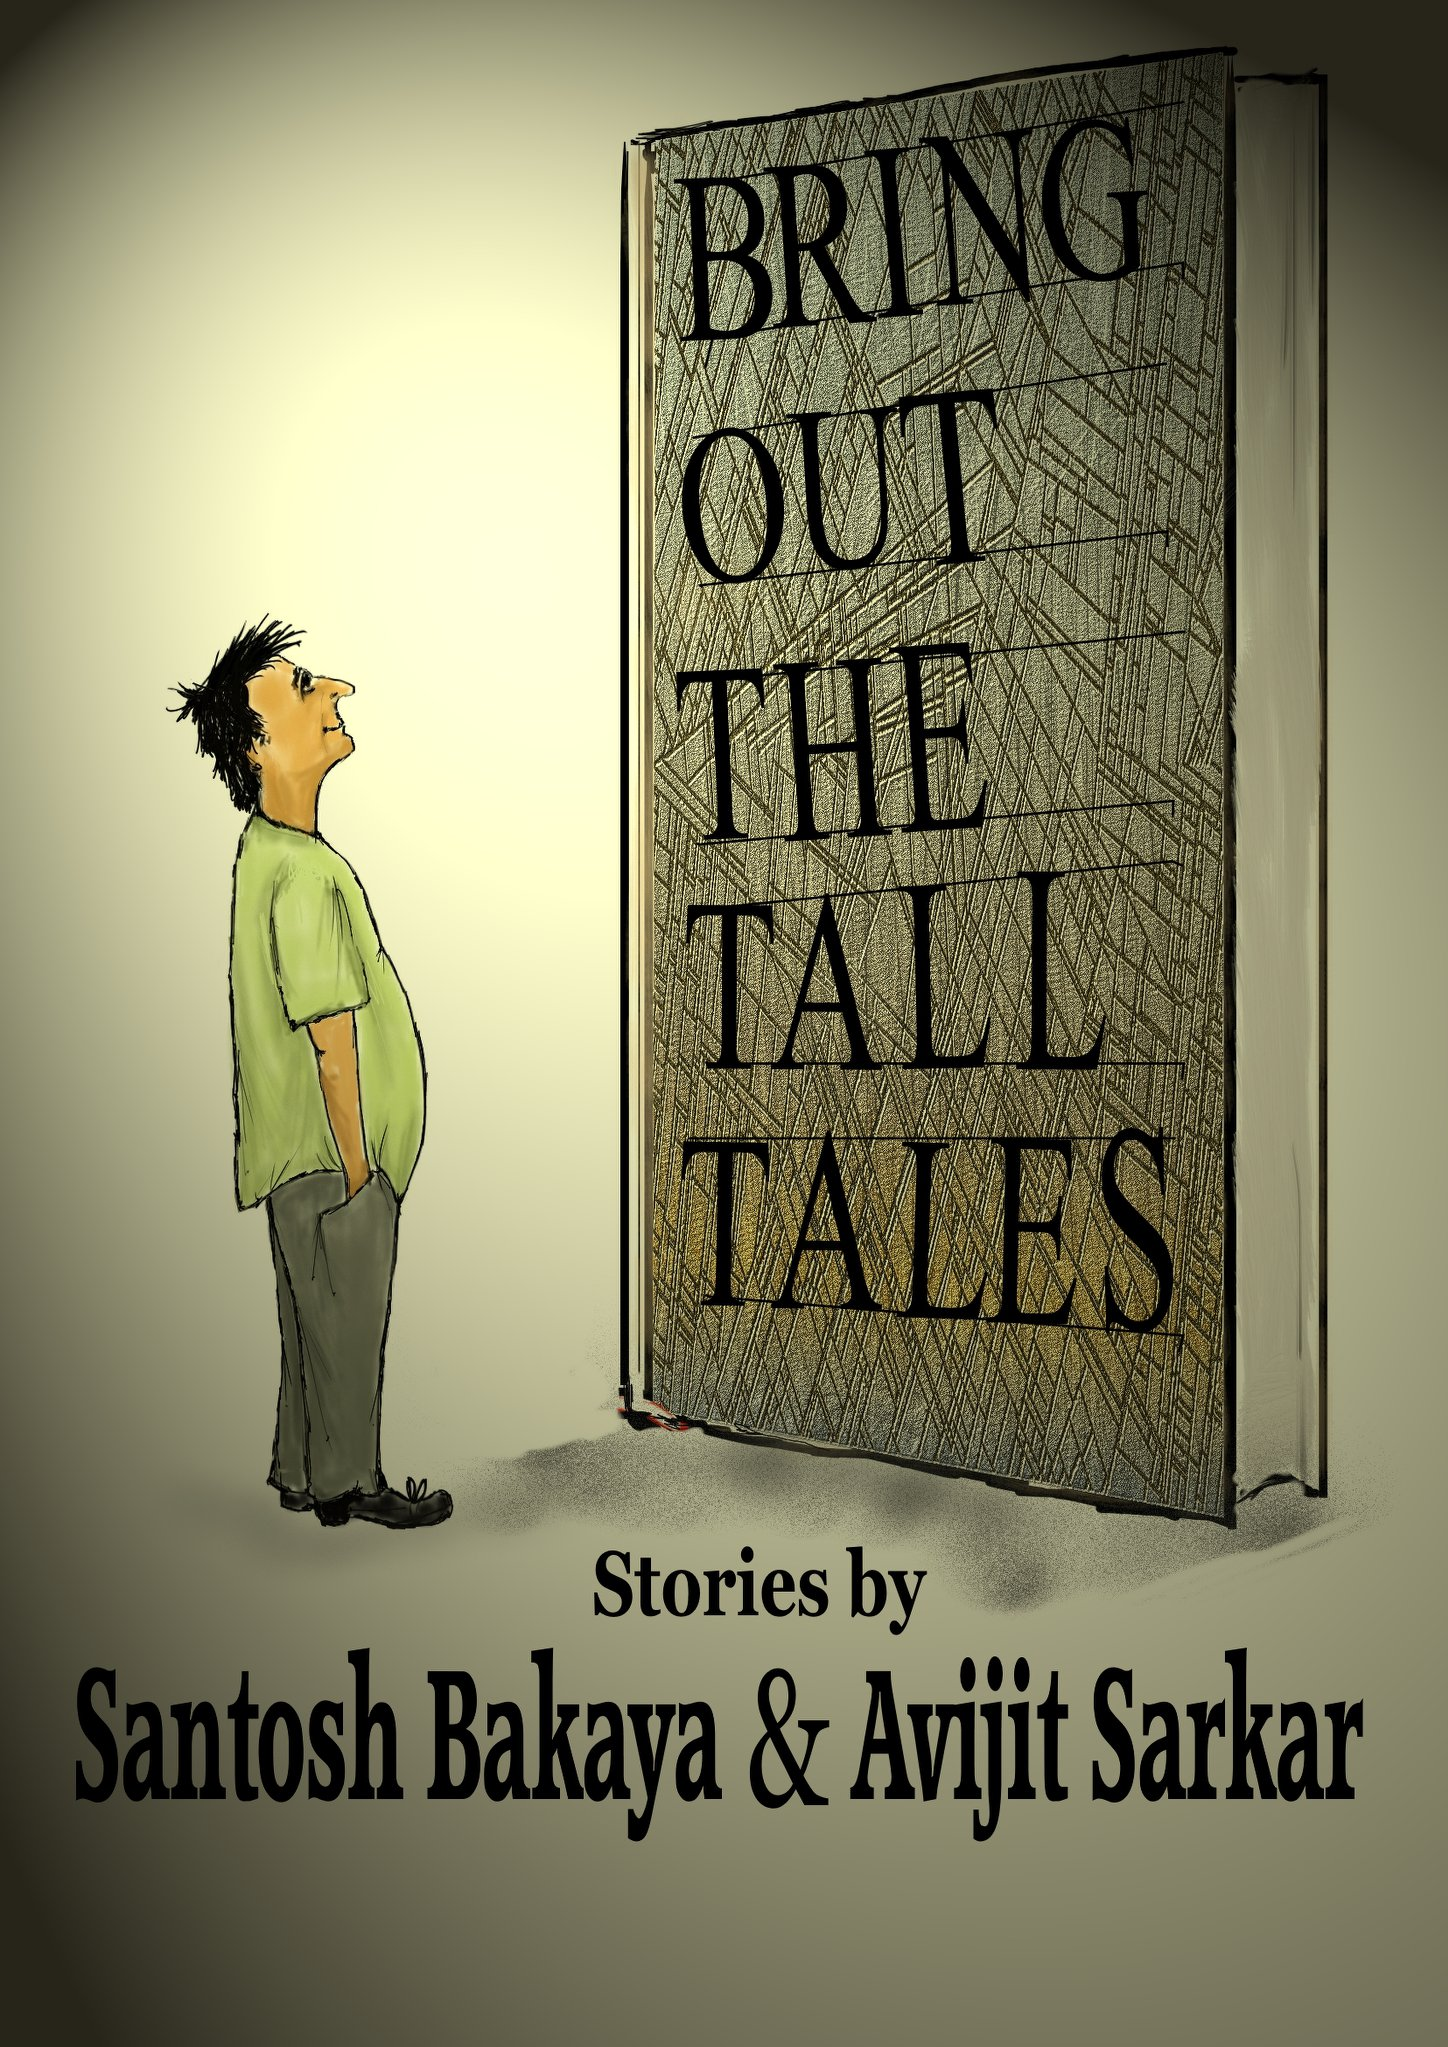 Bring out the Tall Tales - Stories by Santosh Bakay and Avijit Sarkar